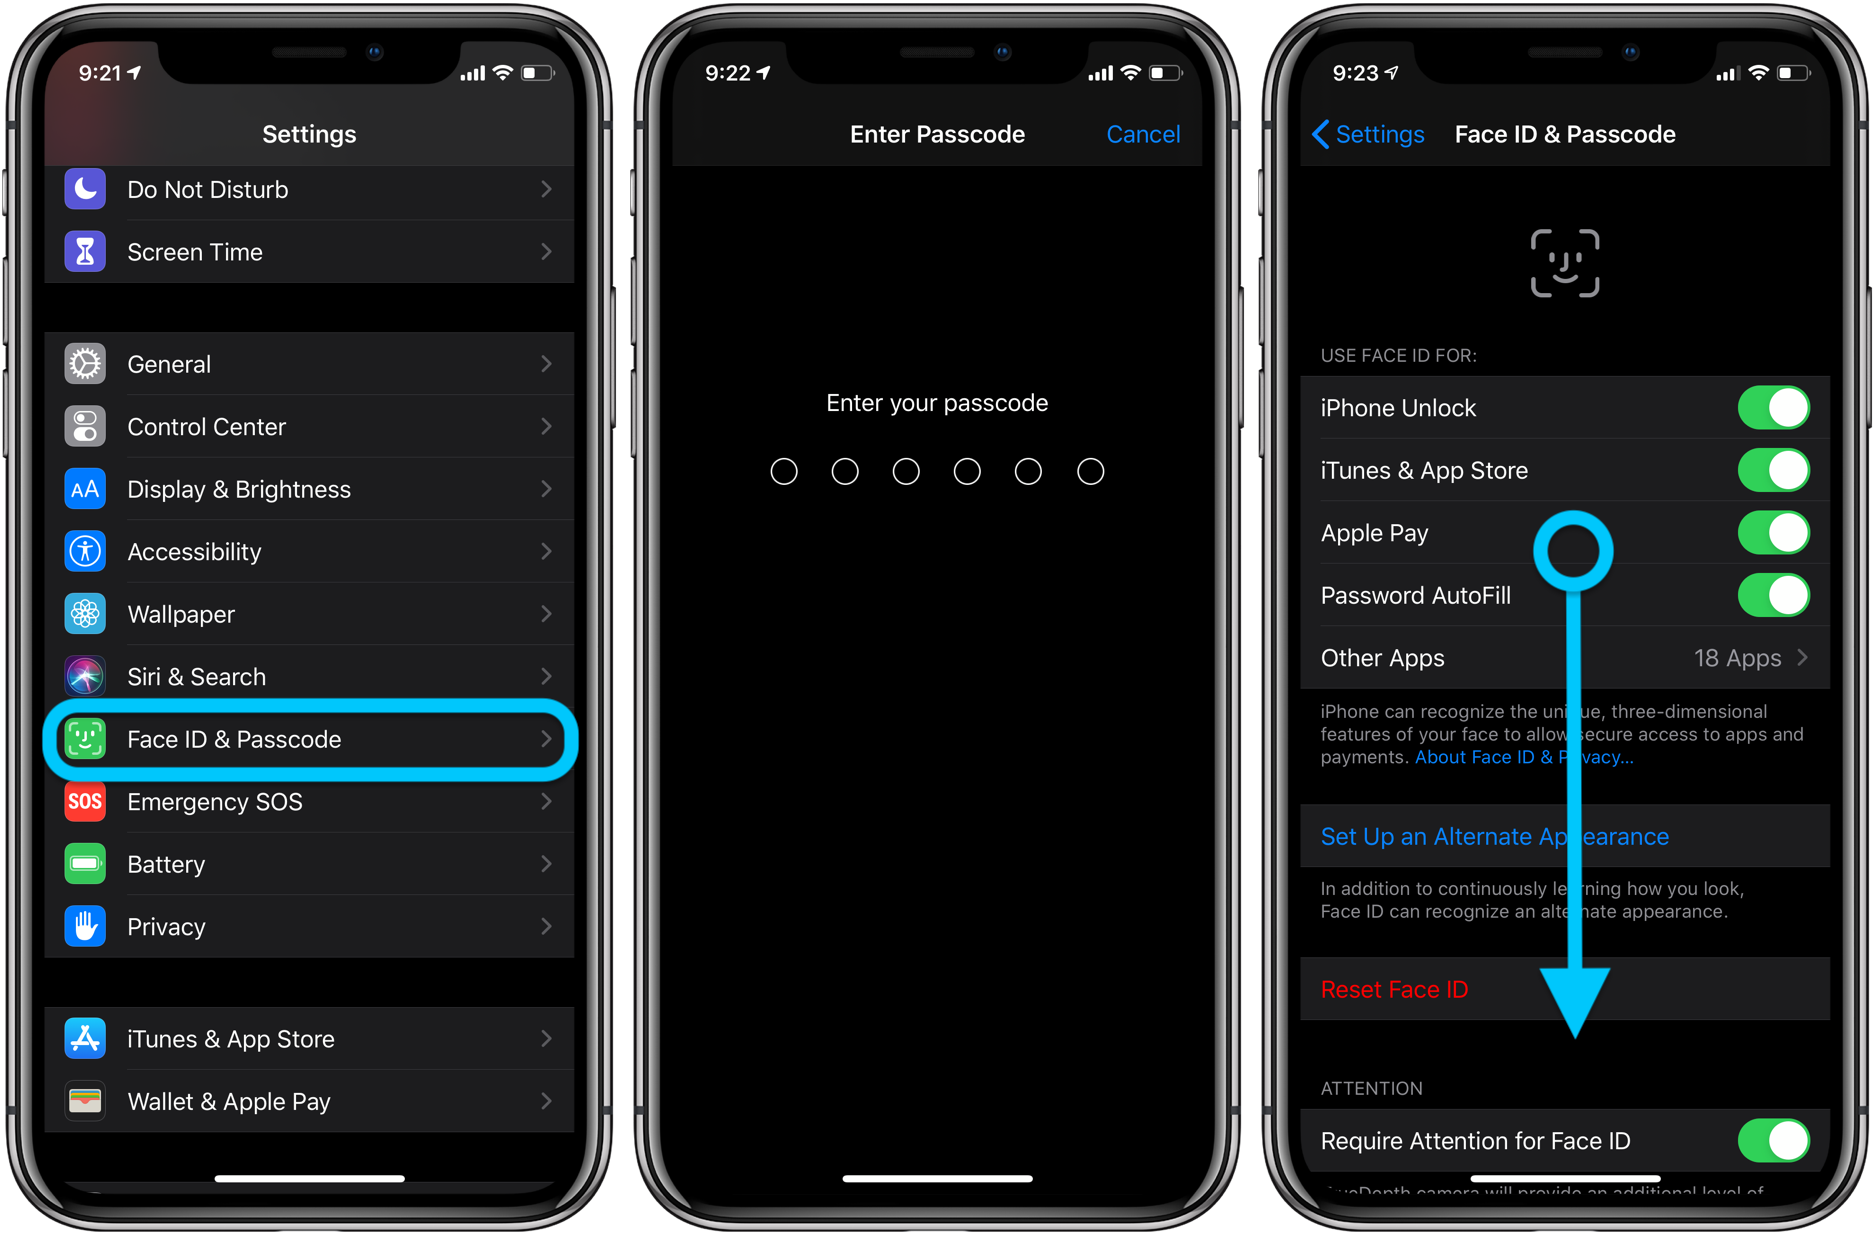 iPhone how to change passcode, skip Face ID walkthrough 2